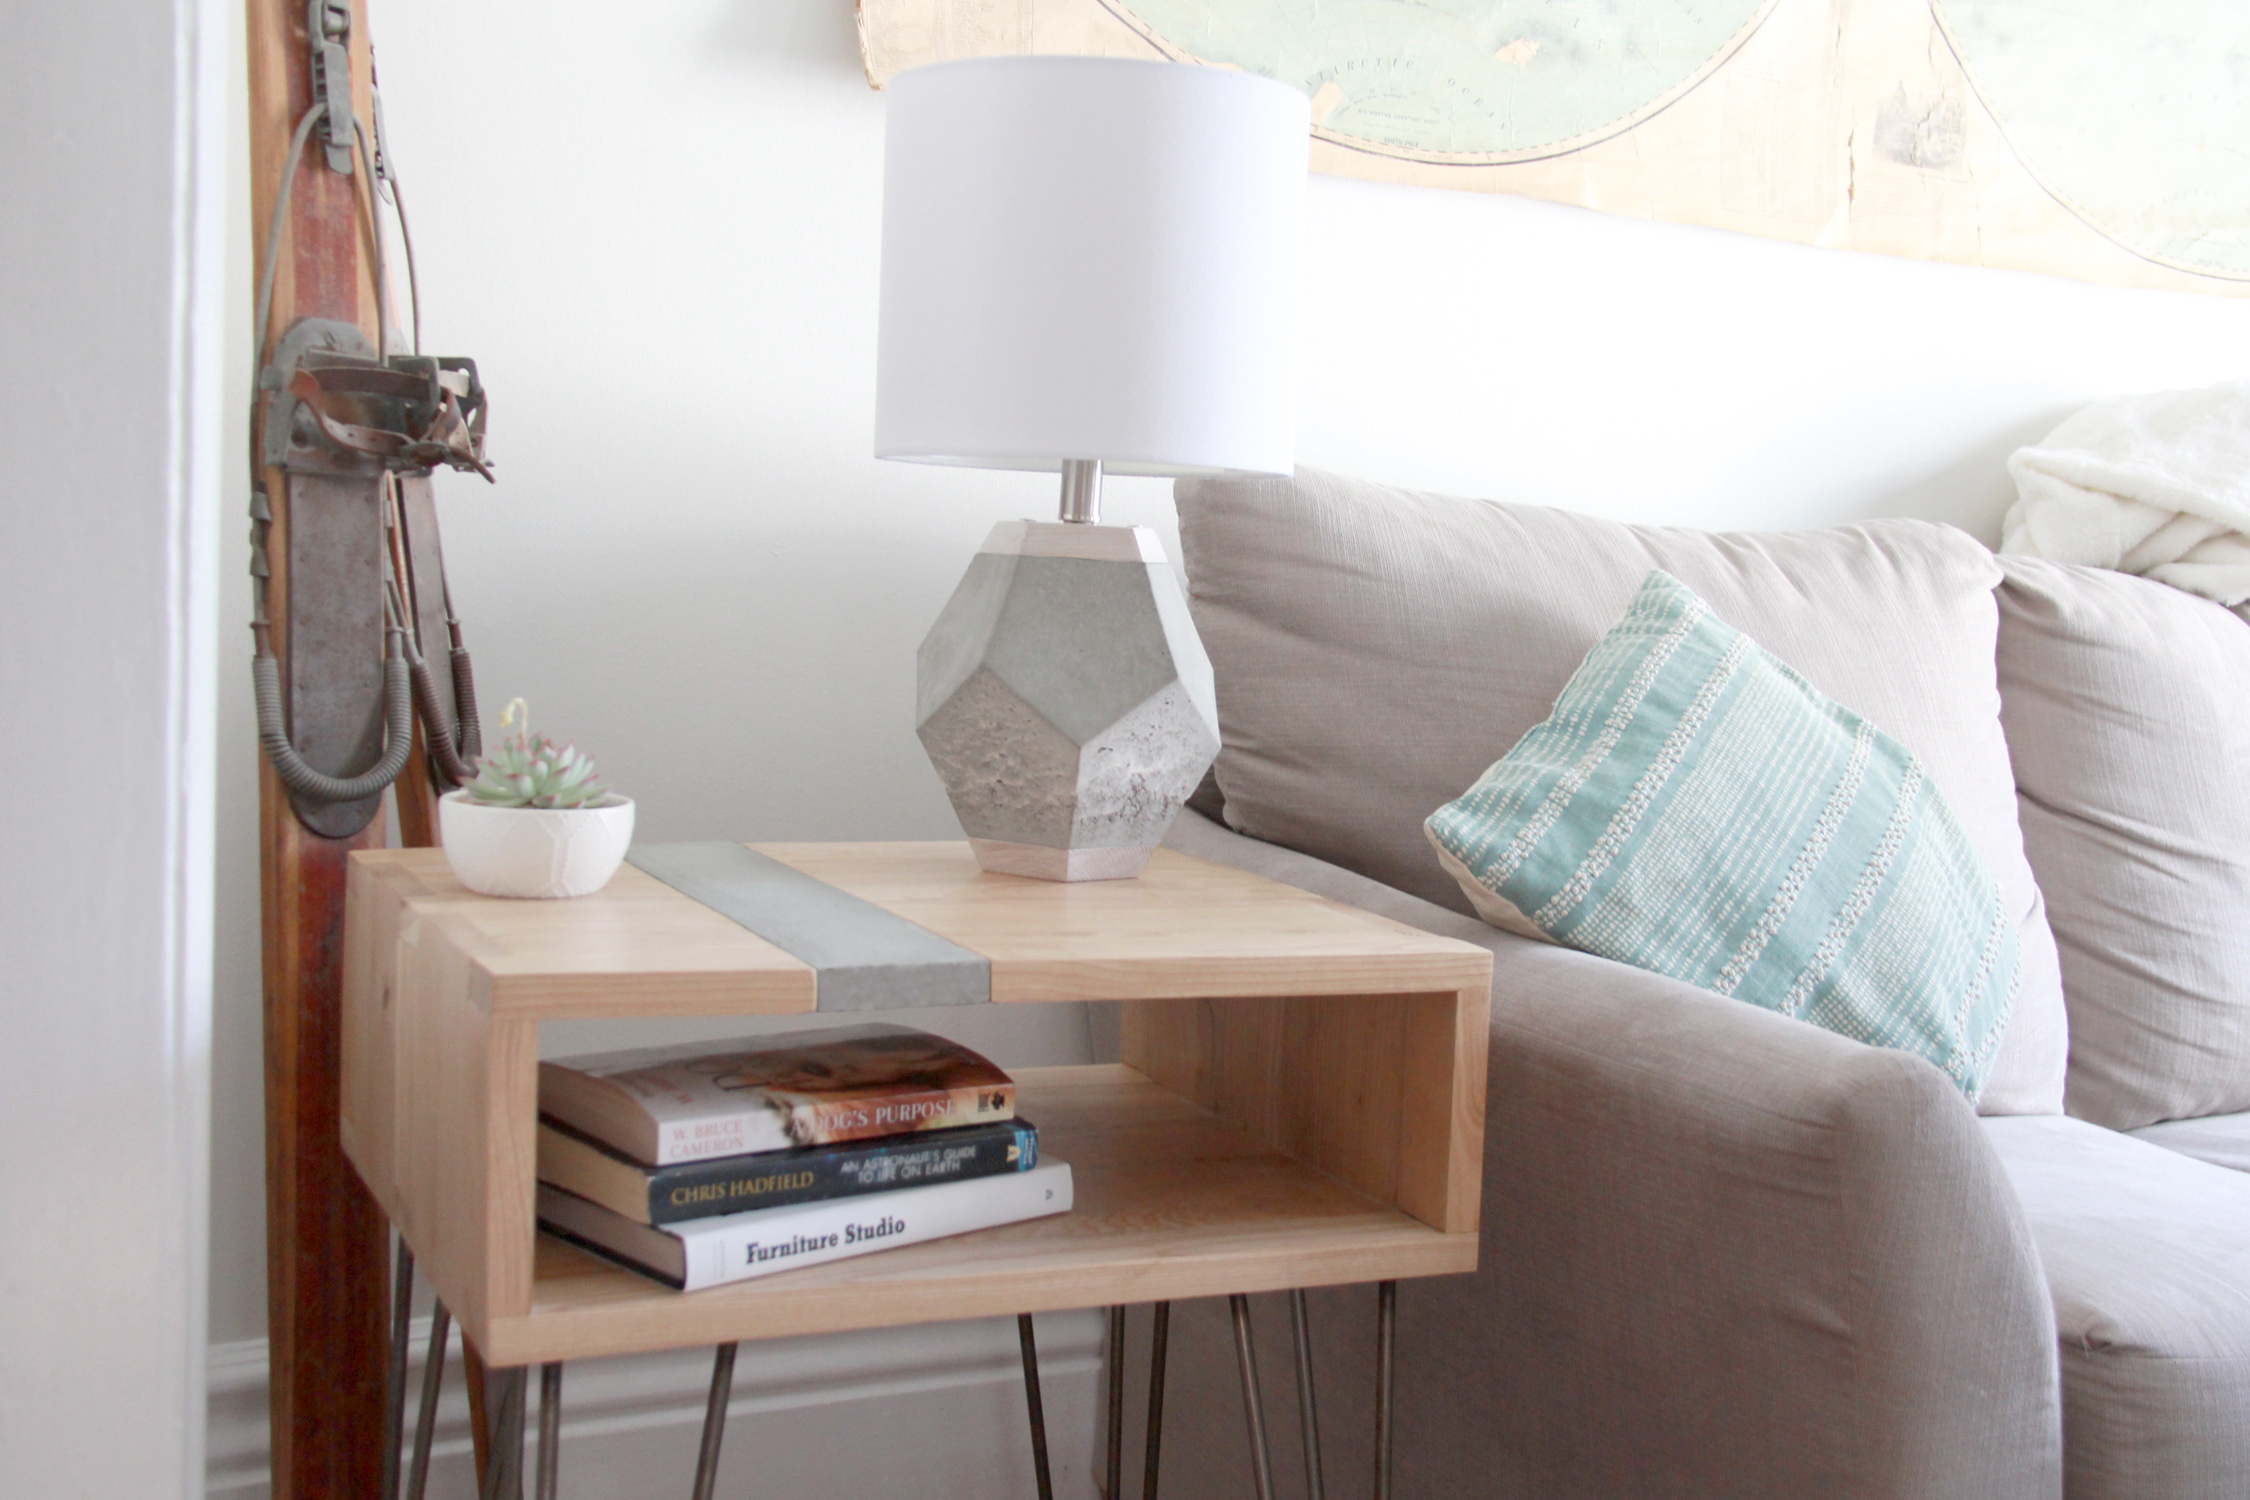 Riverview Design Solutions_Concrete and Ash Wood_Side Table_Geometric Lamp_Brockville.jpg